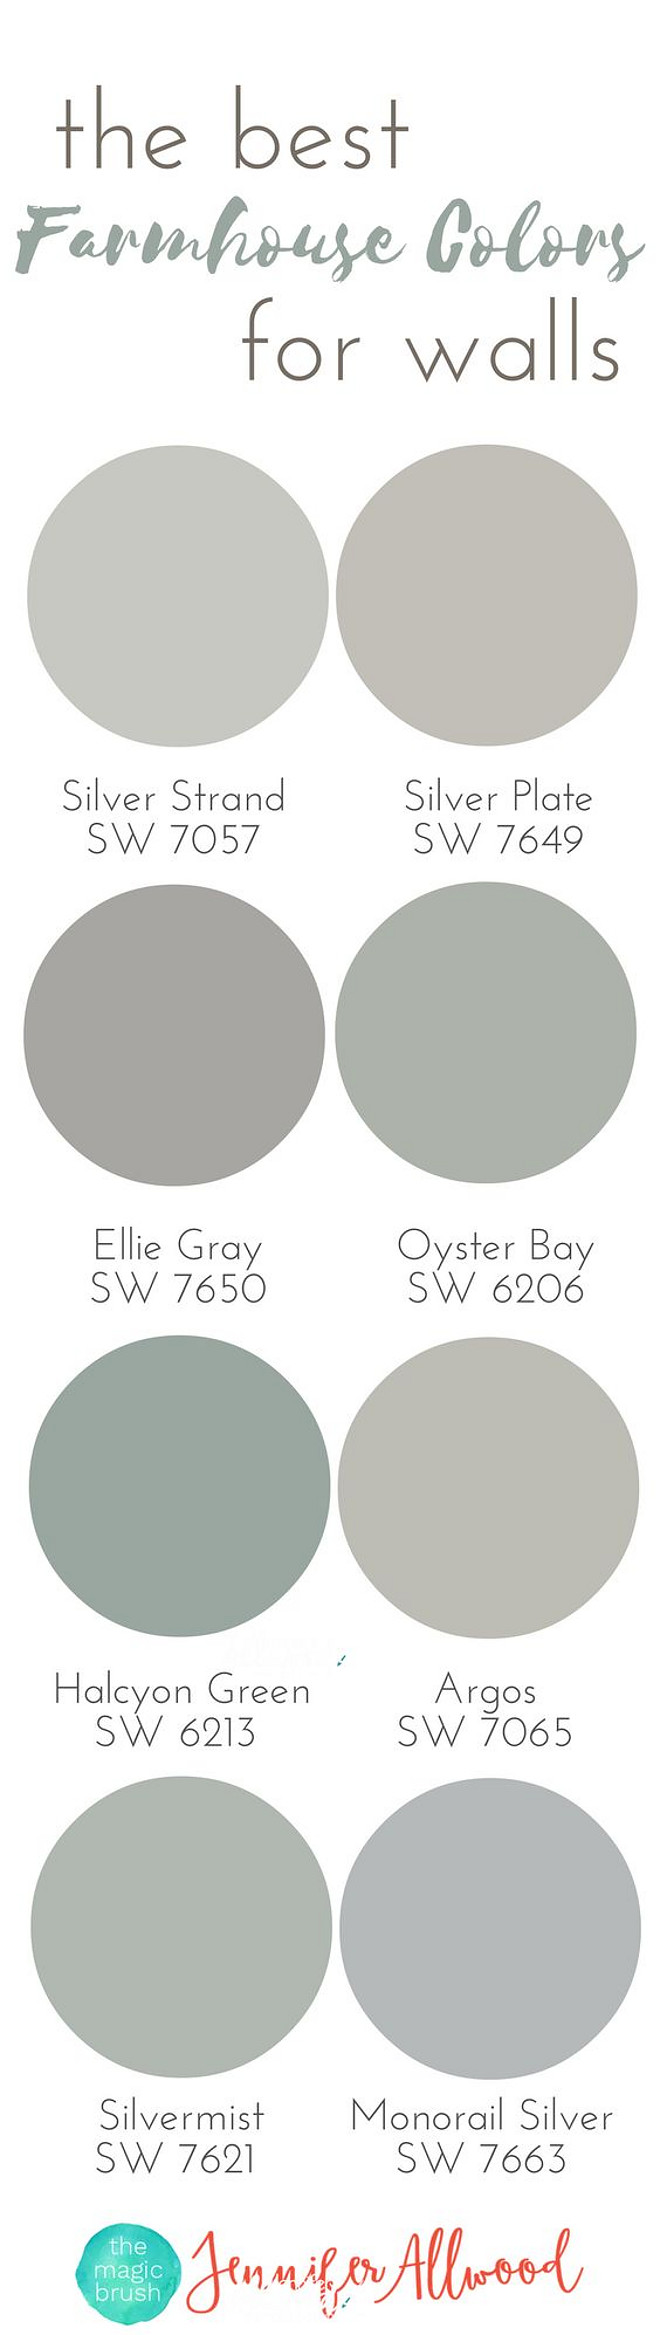 Farmhouse Paint Colors. The Best Farmhouse Paint Colors. Sherwin Williams SW 7057 Silver Strand. Sherwin Williams SW 7649 Silver Plate. Sherwin Williams SW 7650 Ellie Gray. Sherwin Williams SW 6206 Oyster Bay. Sherwin Williams SW 6213 Halcyon Green. Sherwin Williams SW 7065 Argos. Sherwin Williams SW 7621 Silvermist. Sherwin Williams SW 7663 Monorail Silver #SherwinWilliamsSW7057SilverStrand #SherwinWilliamsSW7649SilverPlate #SherwinWilliamsSW7650EllieGray #SherwinWilliamsSW6206OysterBay #SherwinWilliamsSW6213HalcyonGreen #SherwinWilliamsSW7065Argo #SherwinWilliamsSW7621Silvermis #SherwinWilliamsSW7663MonorailSilver #PopularFarmhousePaintColors #FarmhousePaintColors #BestFarmhousePaintColors #PopularFarmhouse #Farmhouse #PaintColors Via Jennifer Allwood - The Magic Brush